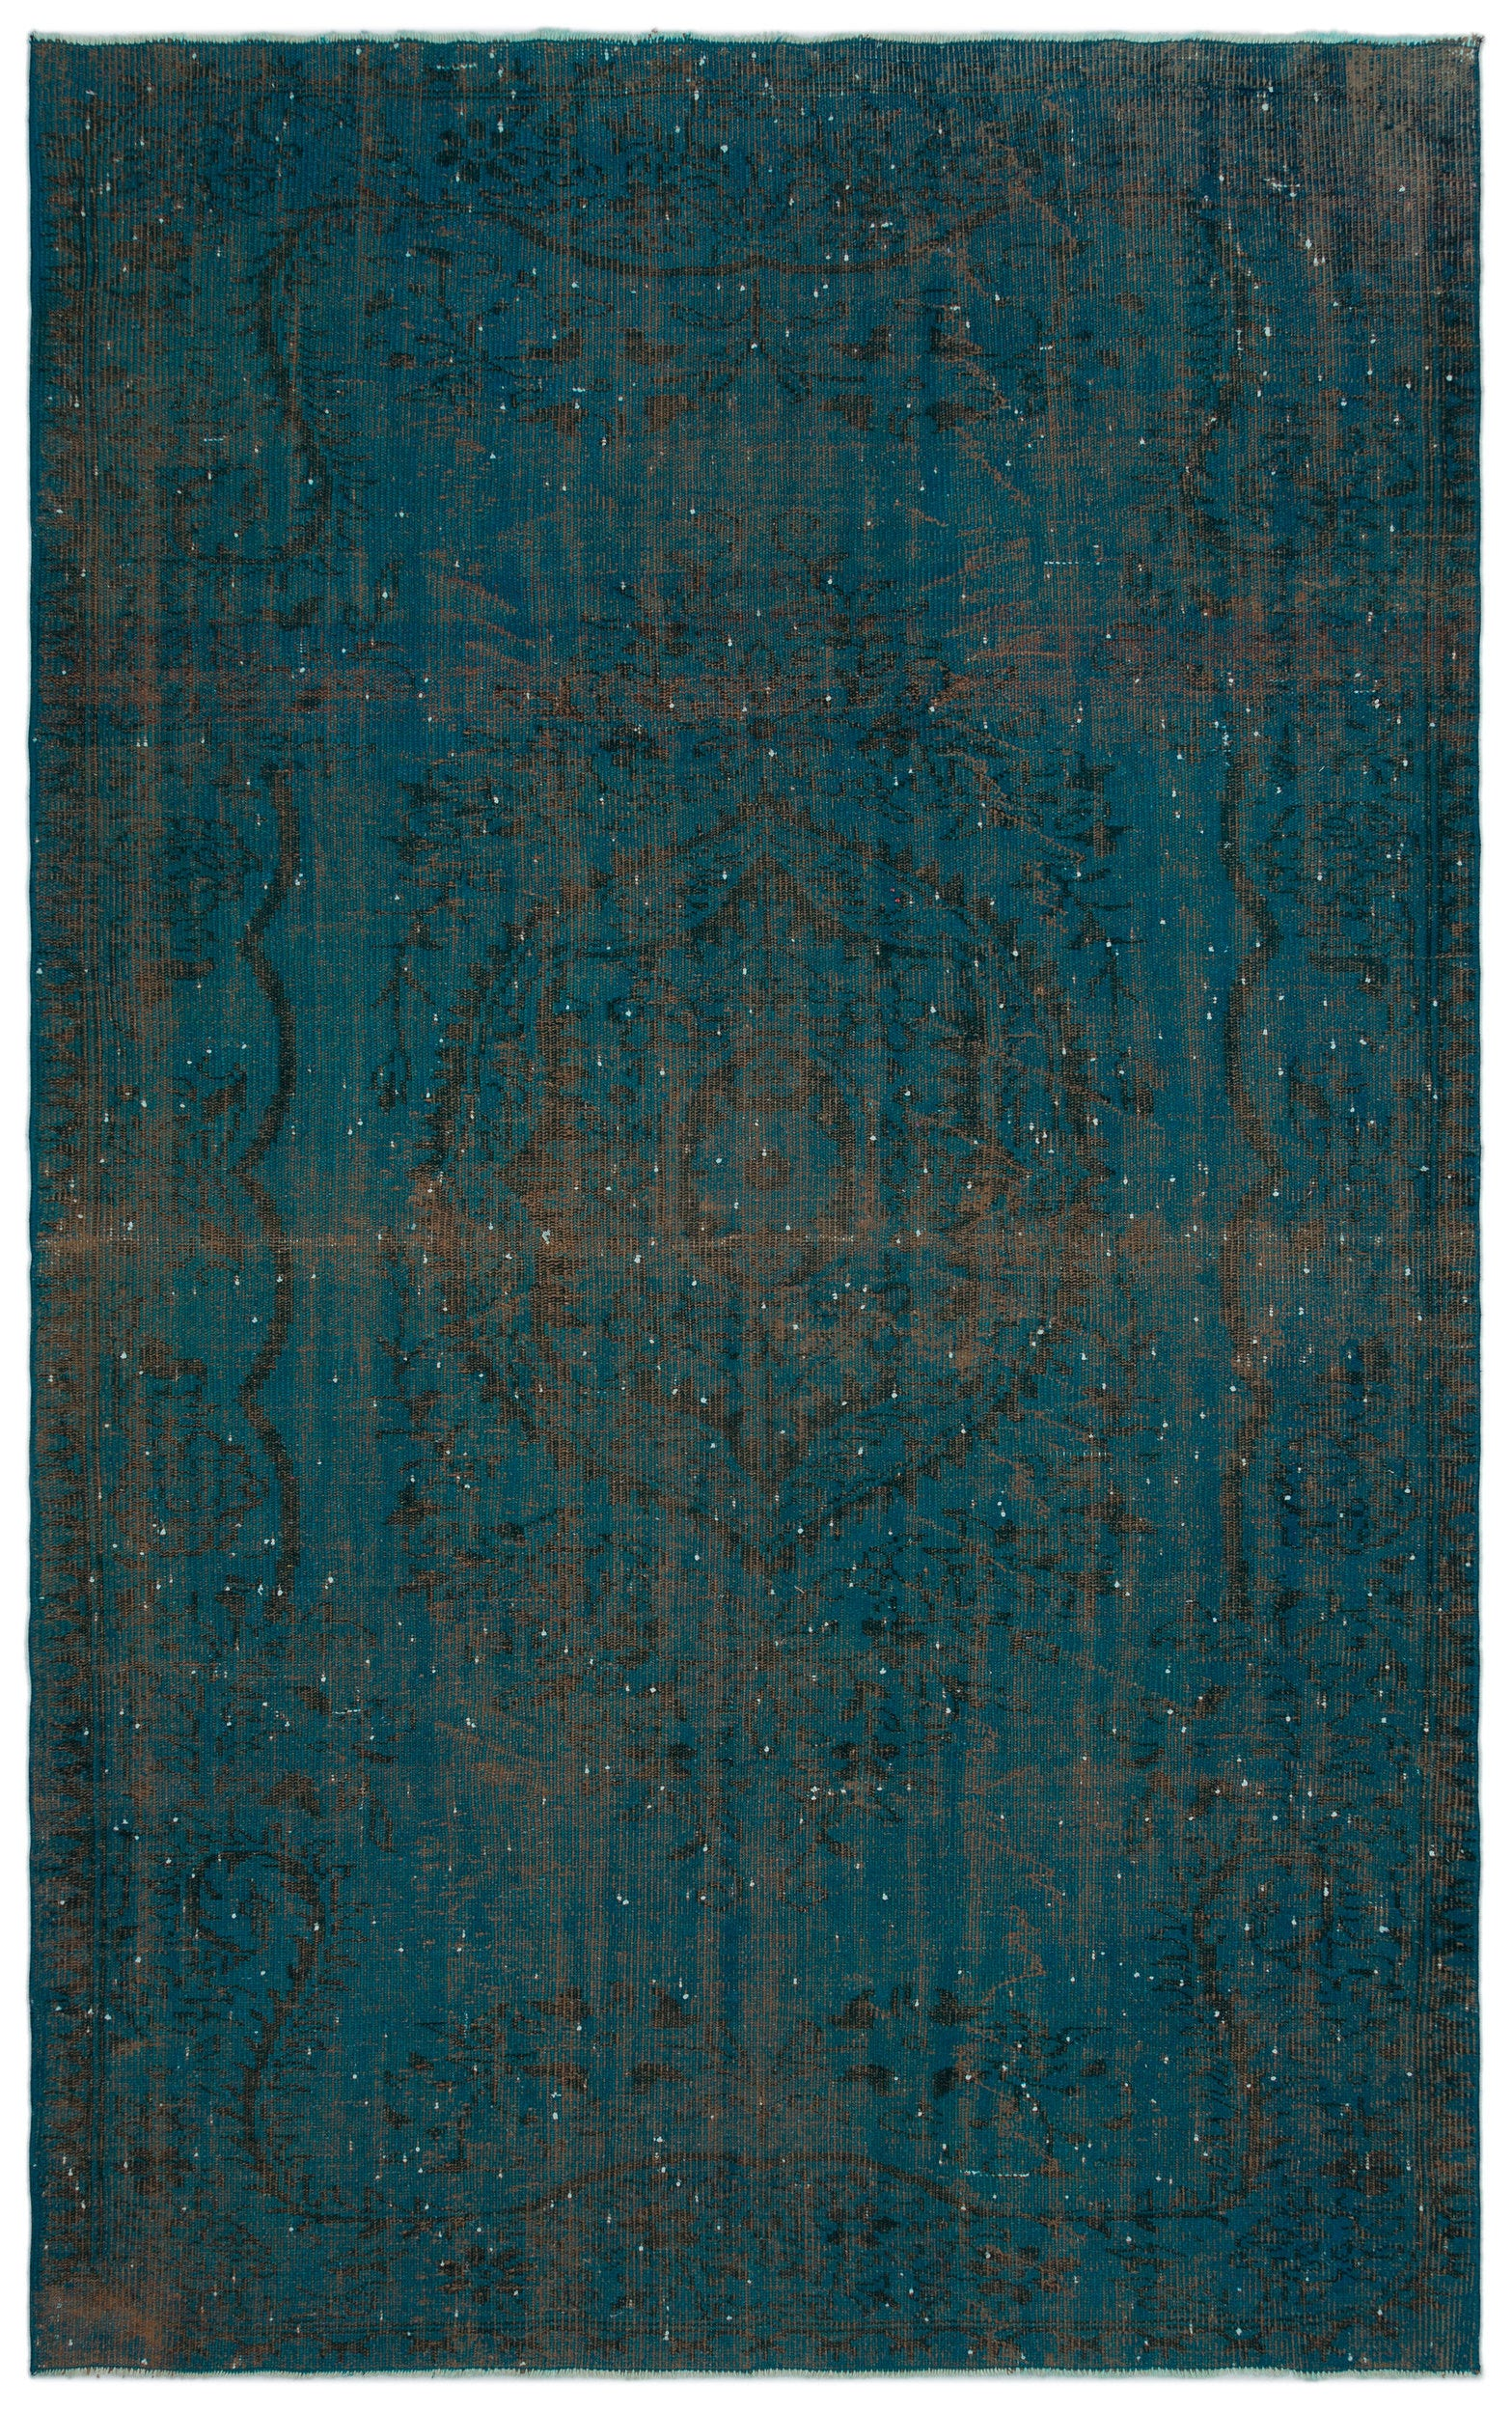 Turquoise  Over Dyed Vintage Rug 6'1'' x 9'10'' ft 185 x 300 cm